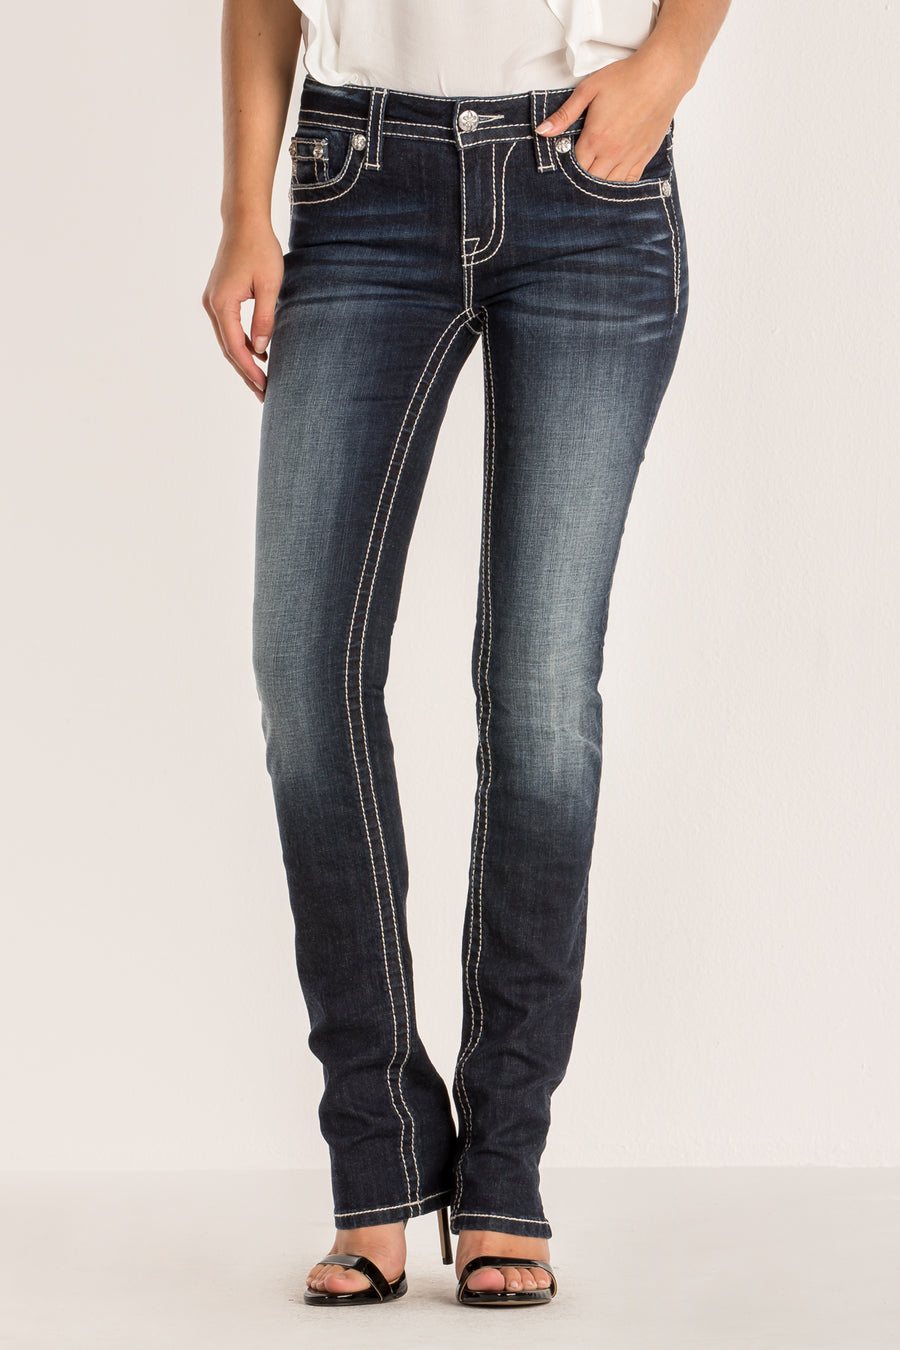 STITCHED UP STRAIGHT LEG JEAN